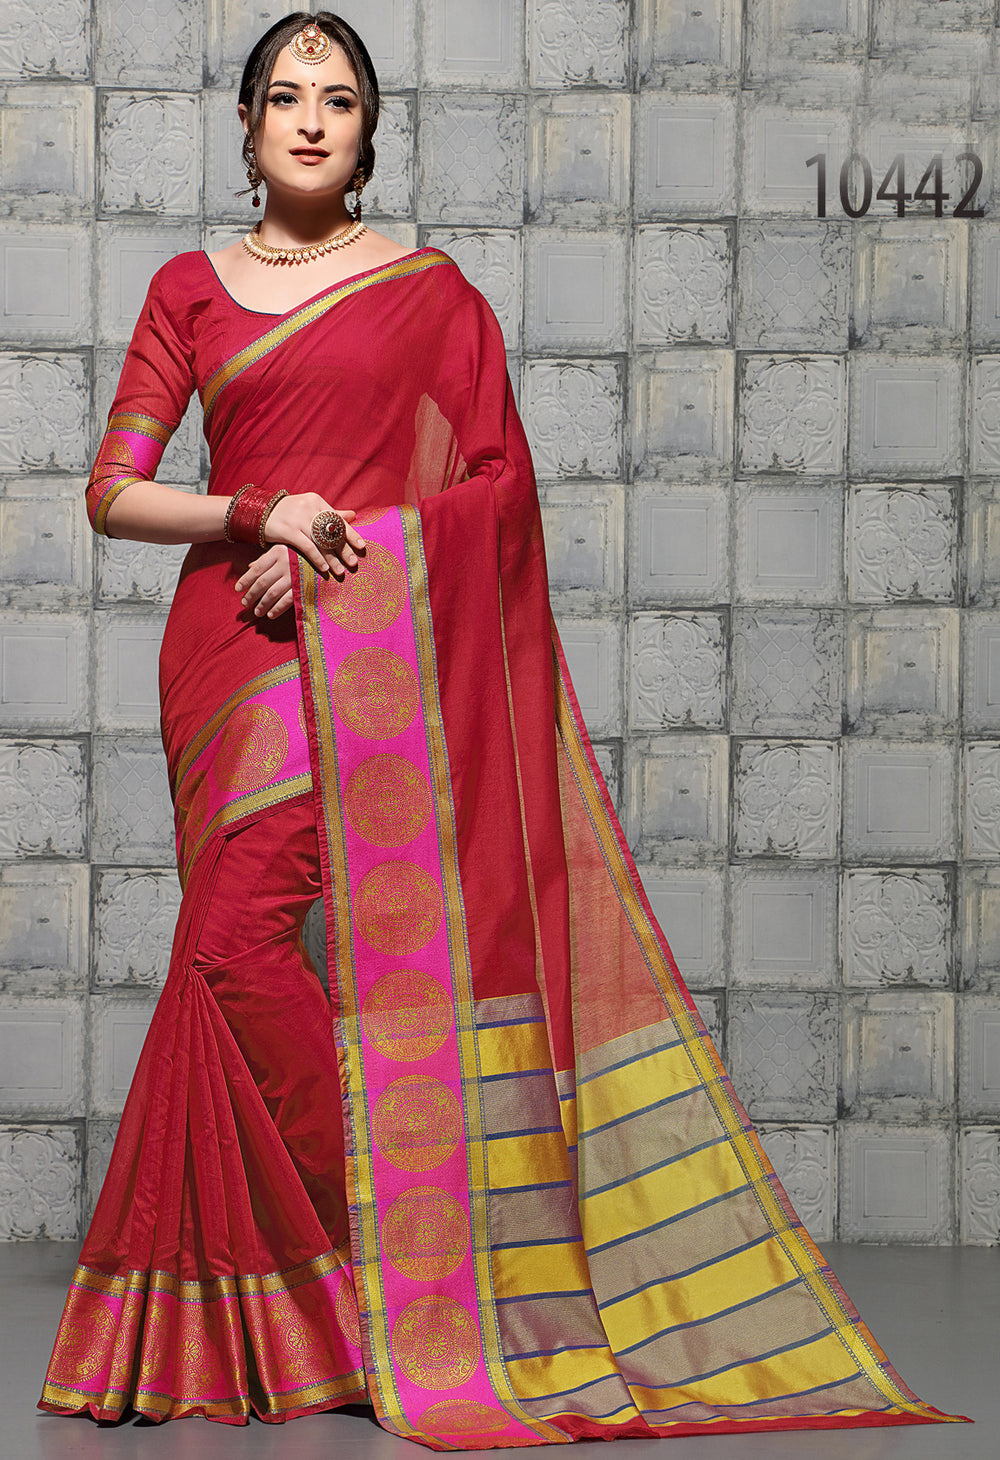 Roop Kashish Women Red Party Wear woven Cotton Printed Saree And Border And Cotton Blouse Material_RKSCSUNAHARI10442